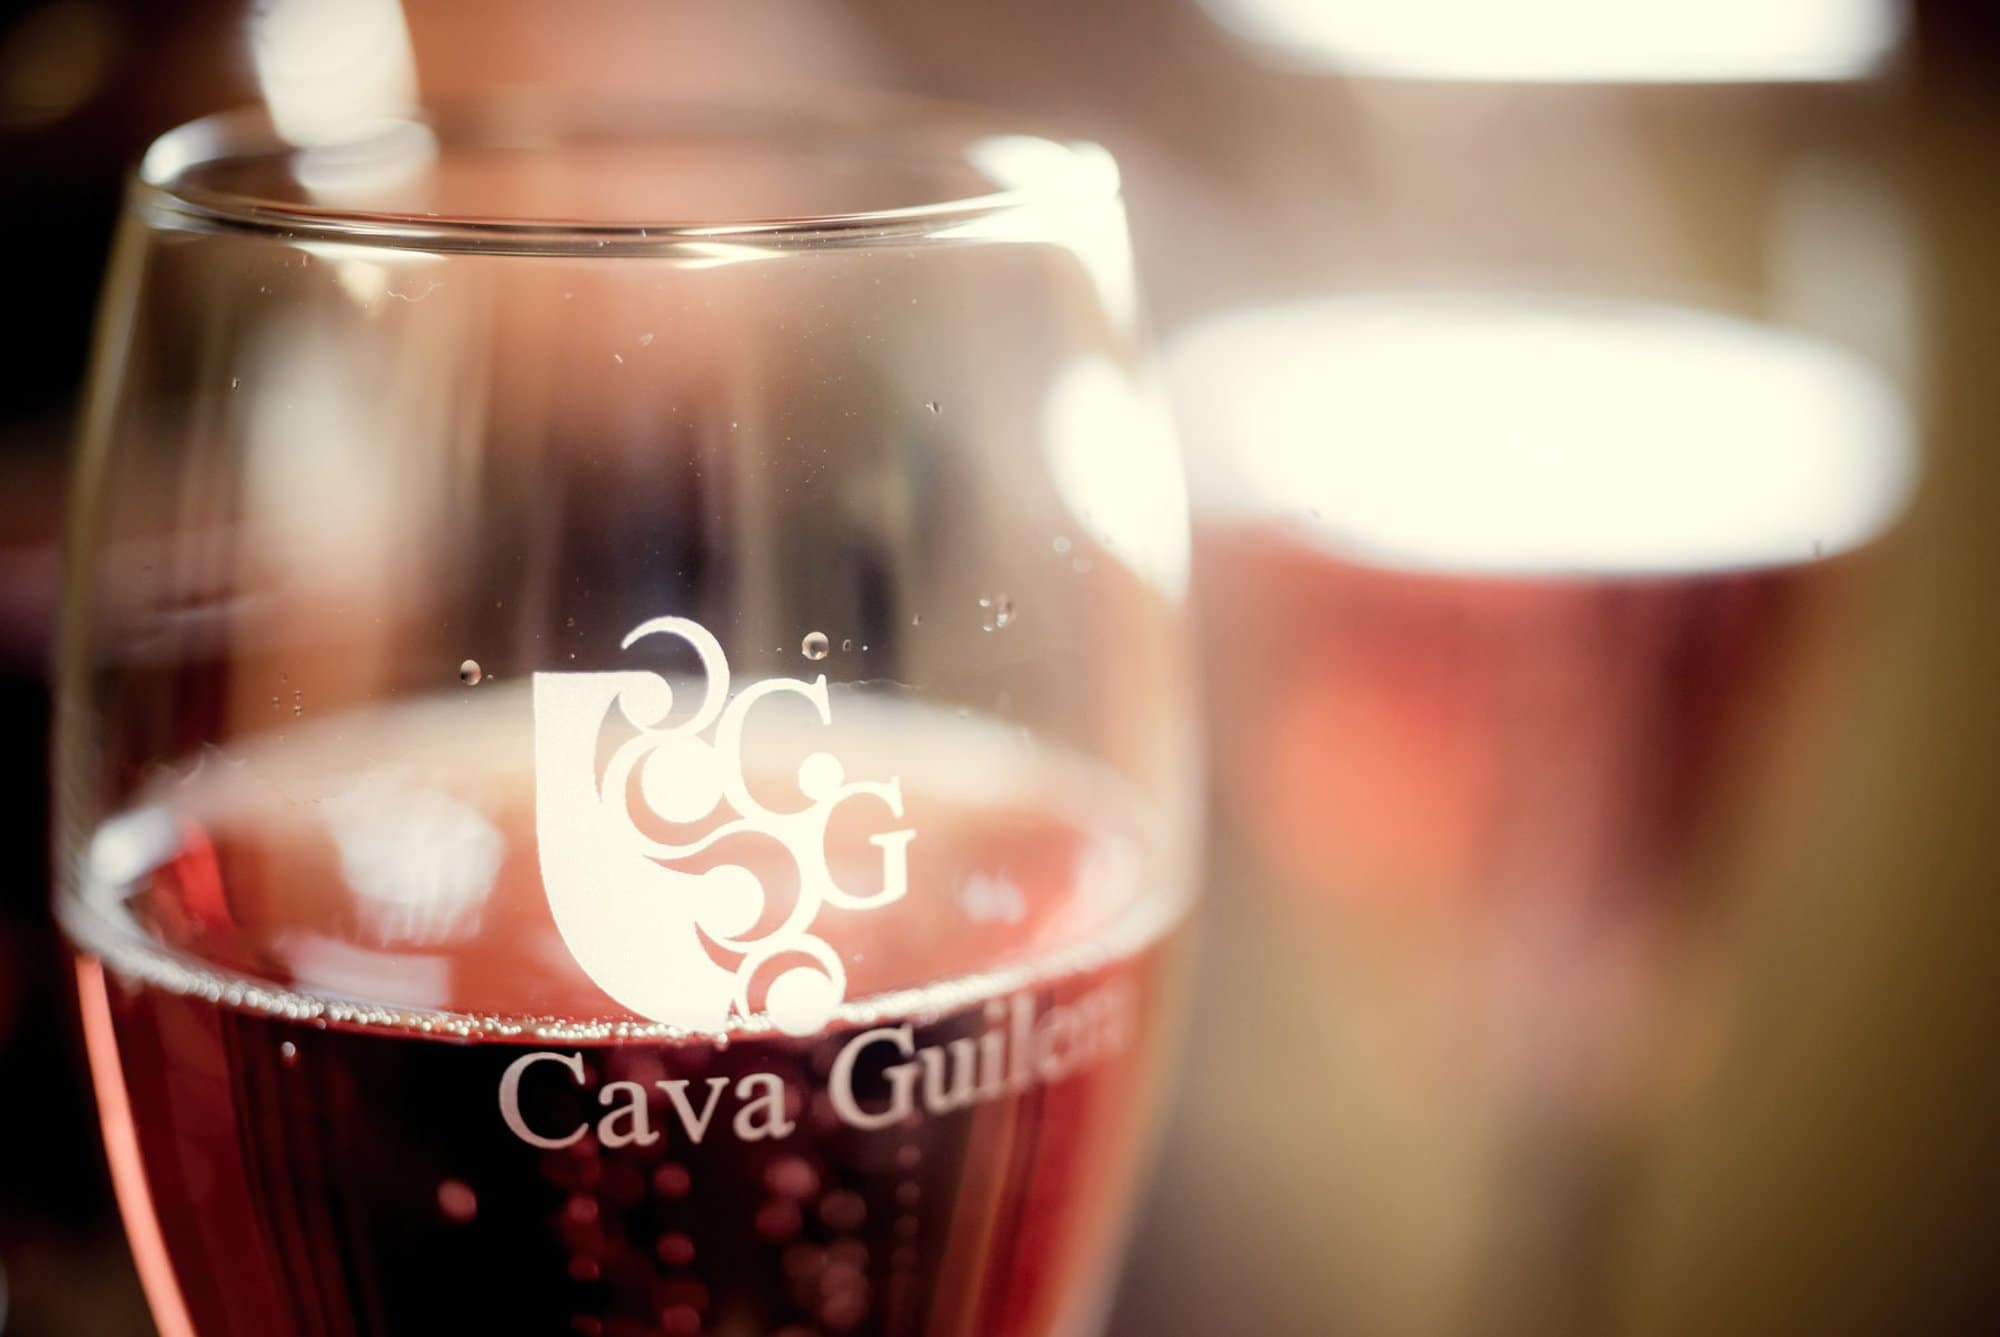 Detail of a pink cave glass. In the Cup itself, it reads Cava Guilera.